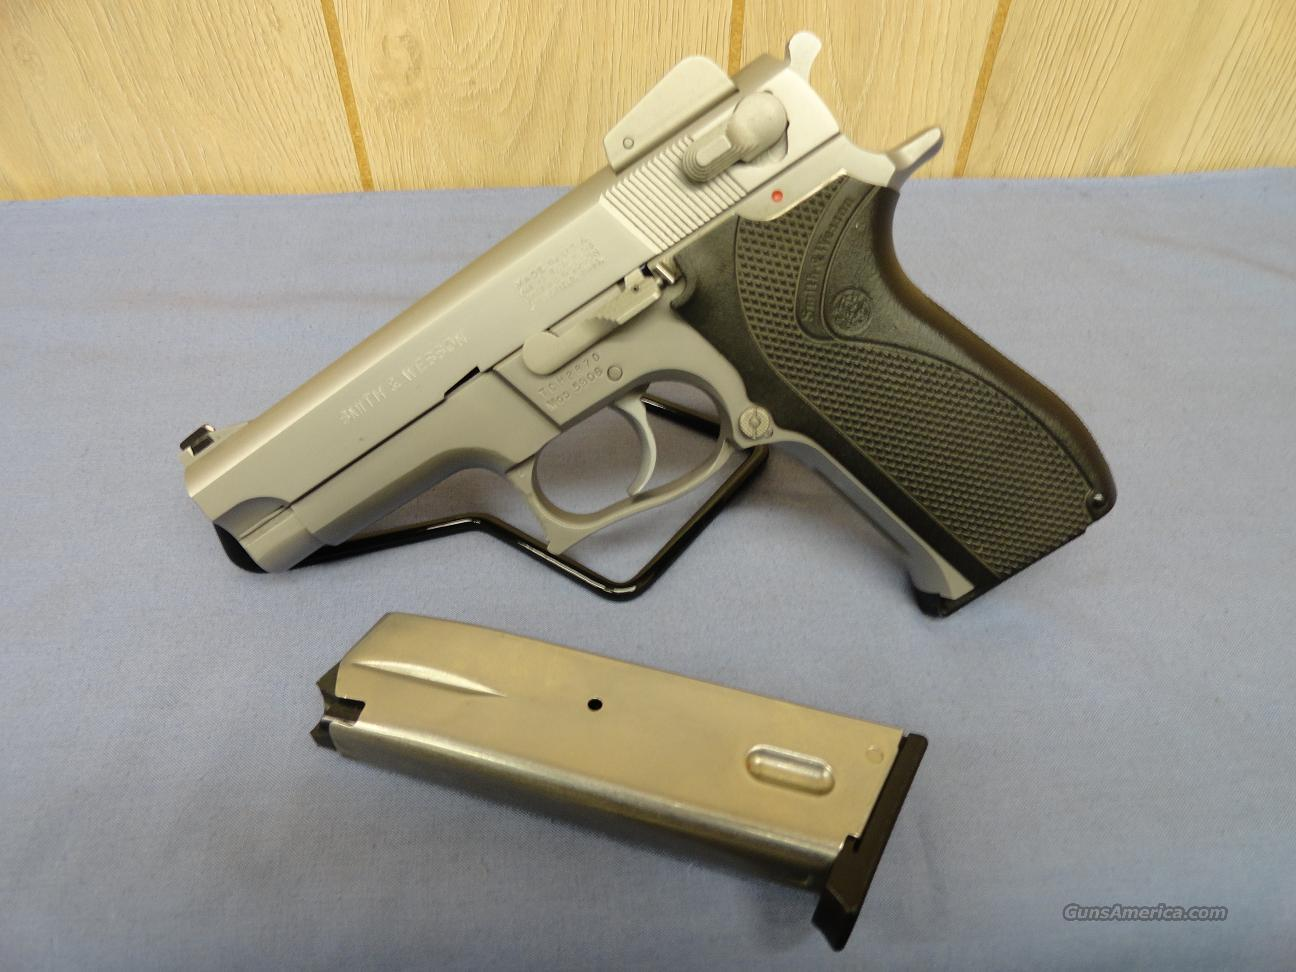 Smith & Wesson Model 5906 Stainless 9mm  Guns > Pistols > Smith & Wesson Pistols - Autos > Steel Frame